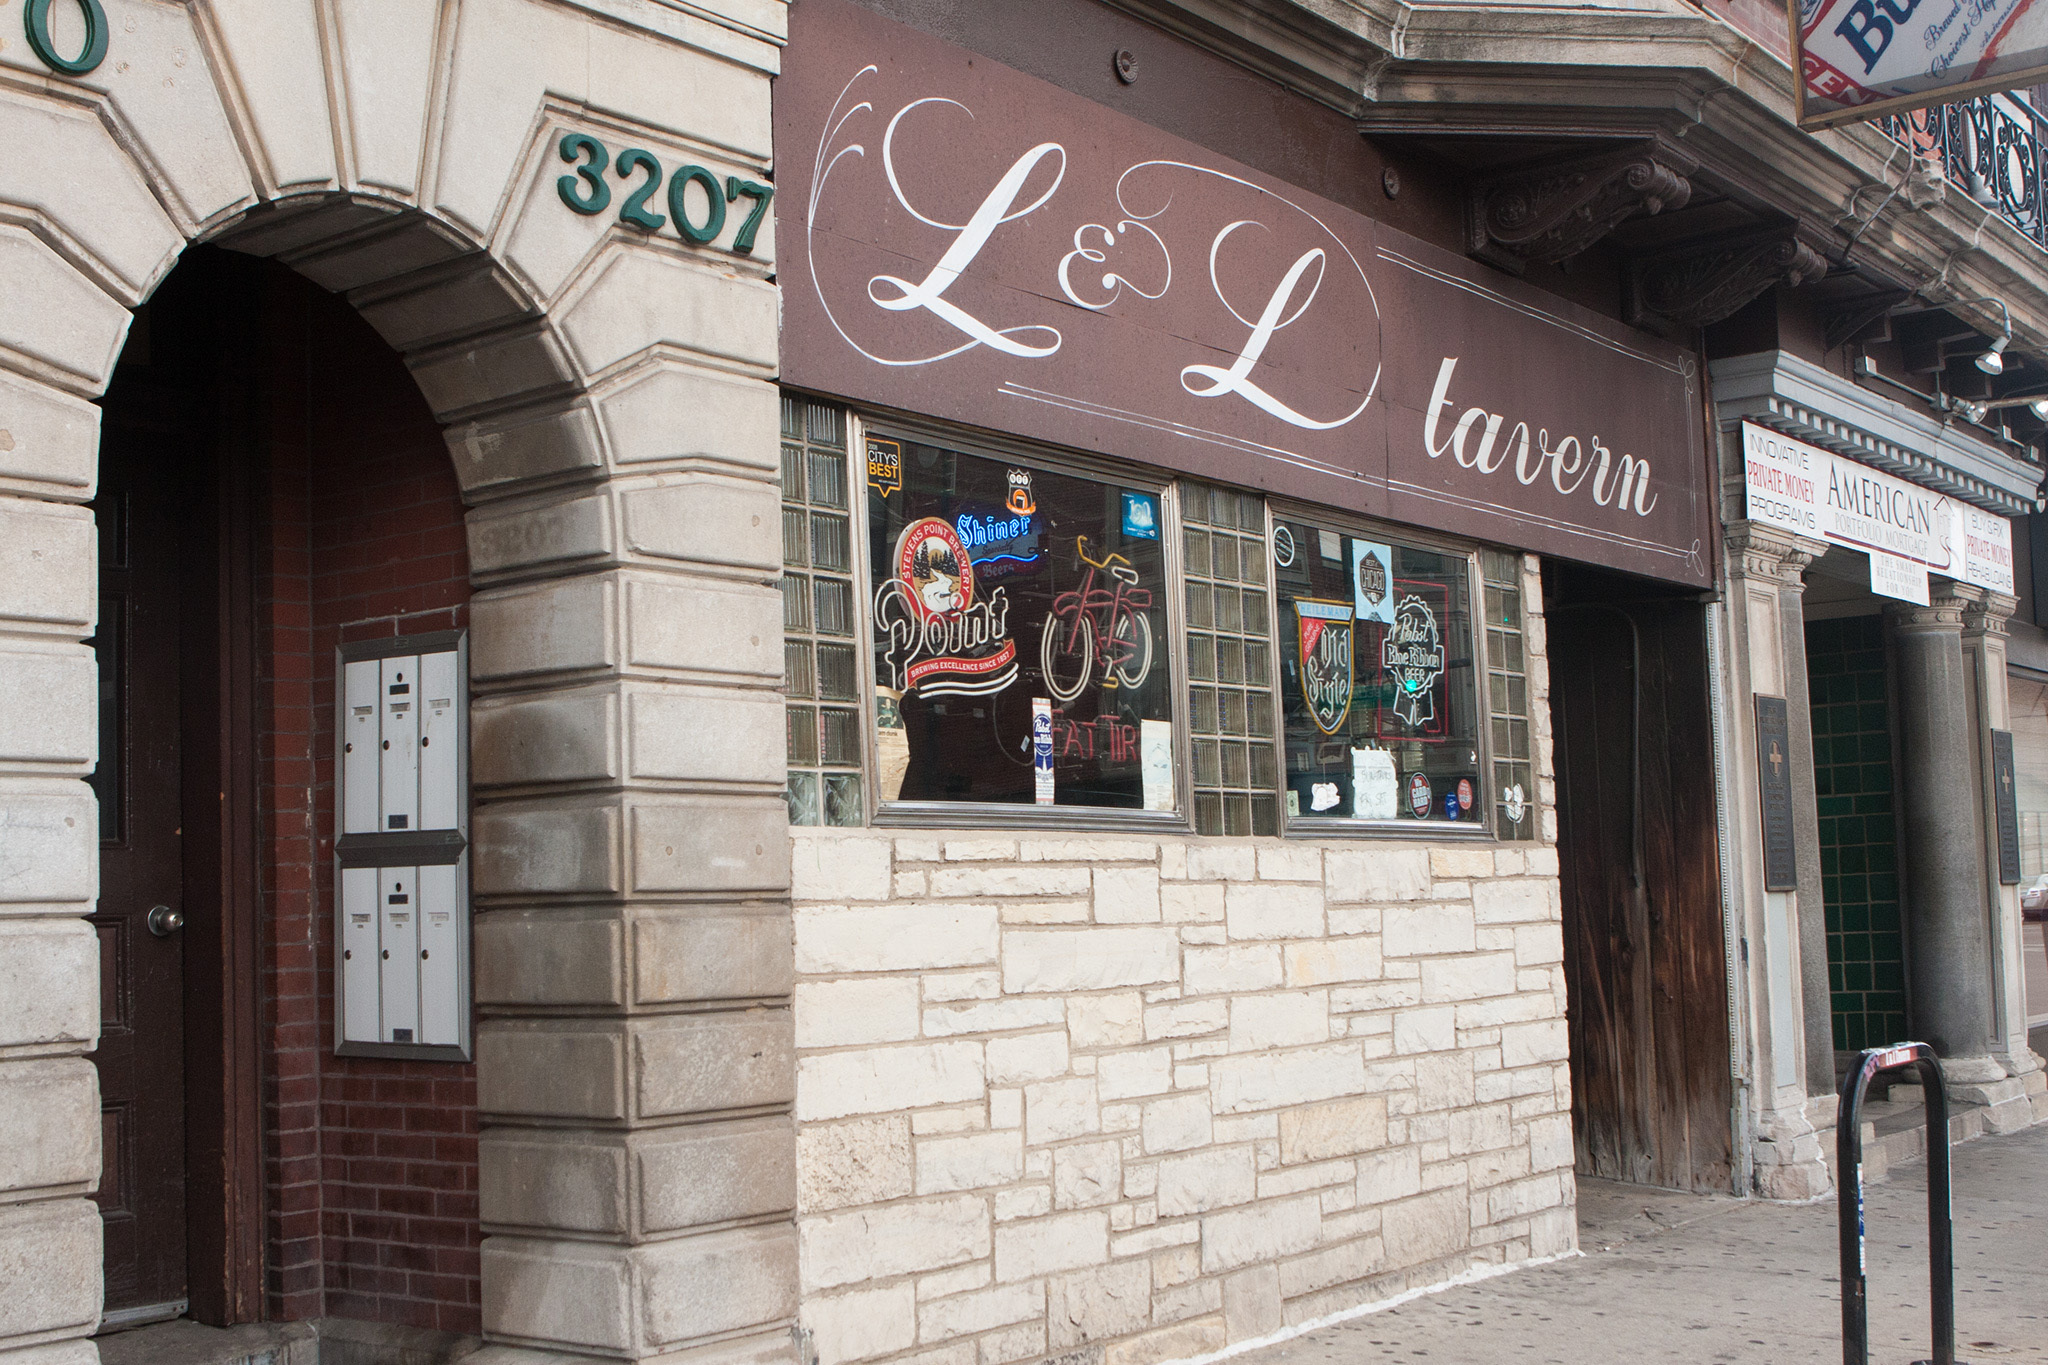 0613.chi.rb.at.LnLTavern.exterior.jpg